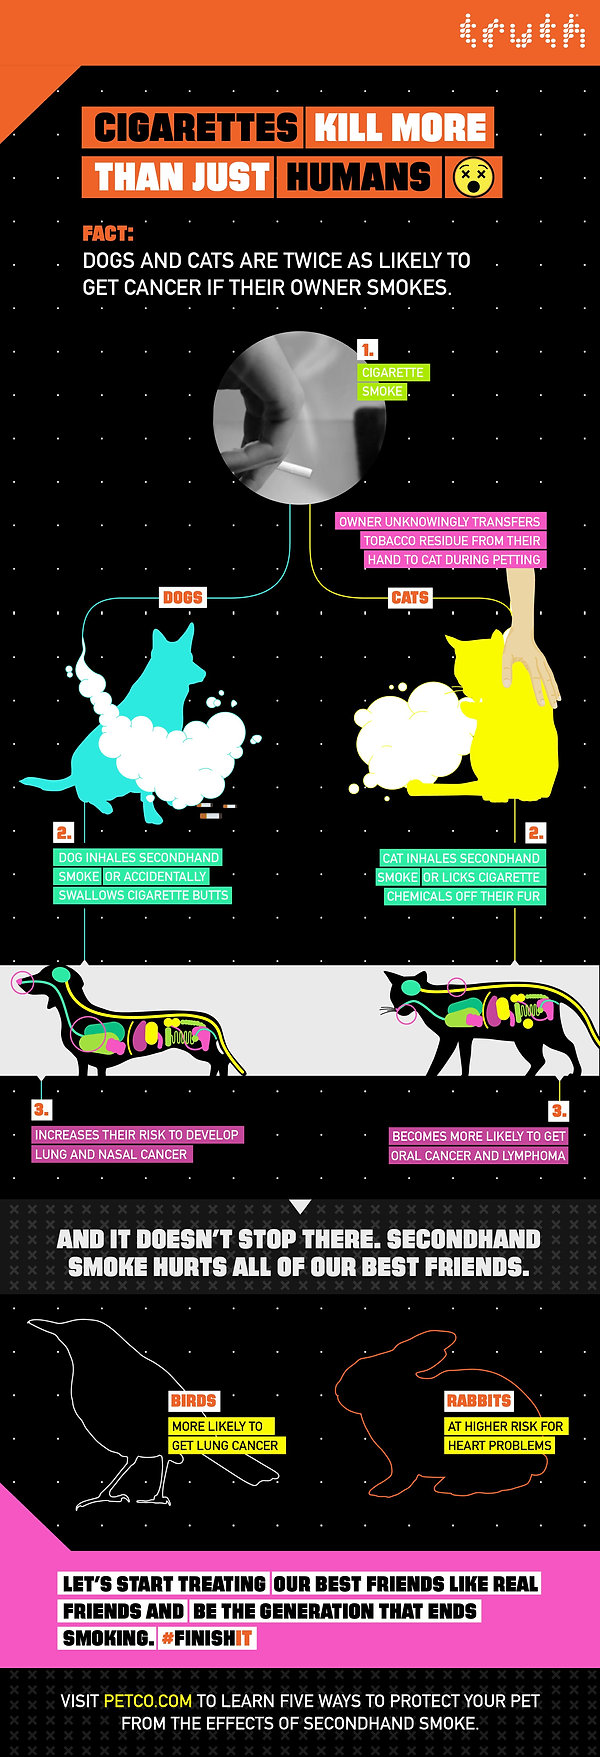 petco x truth all animals infographic 1.